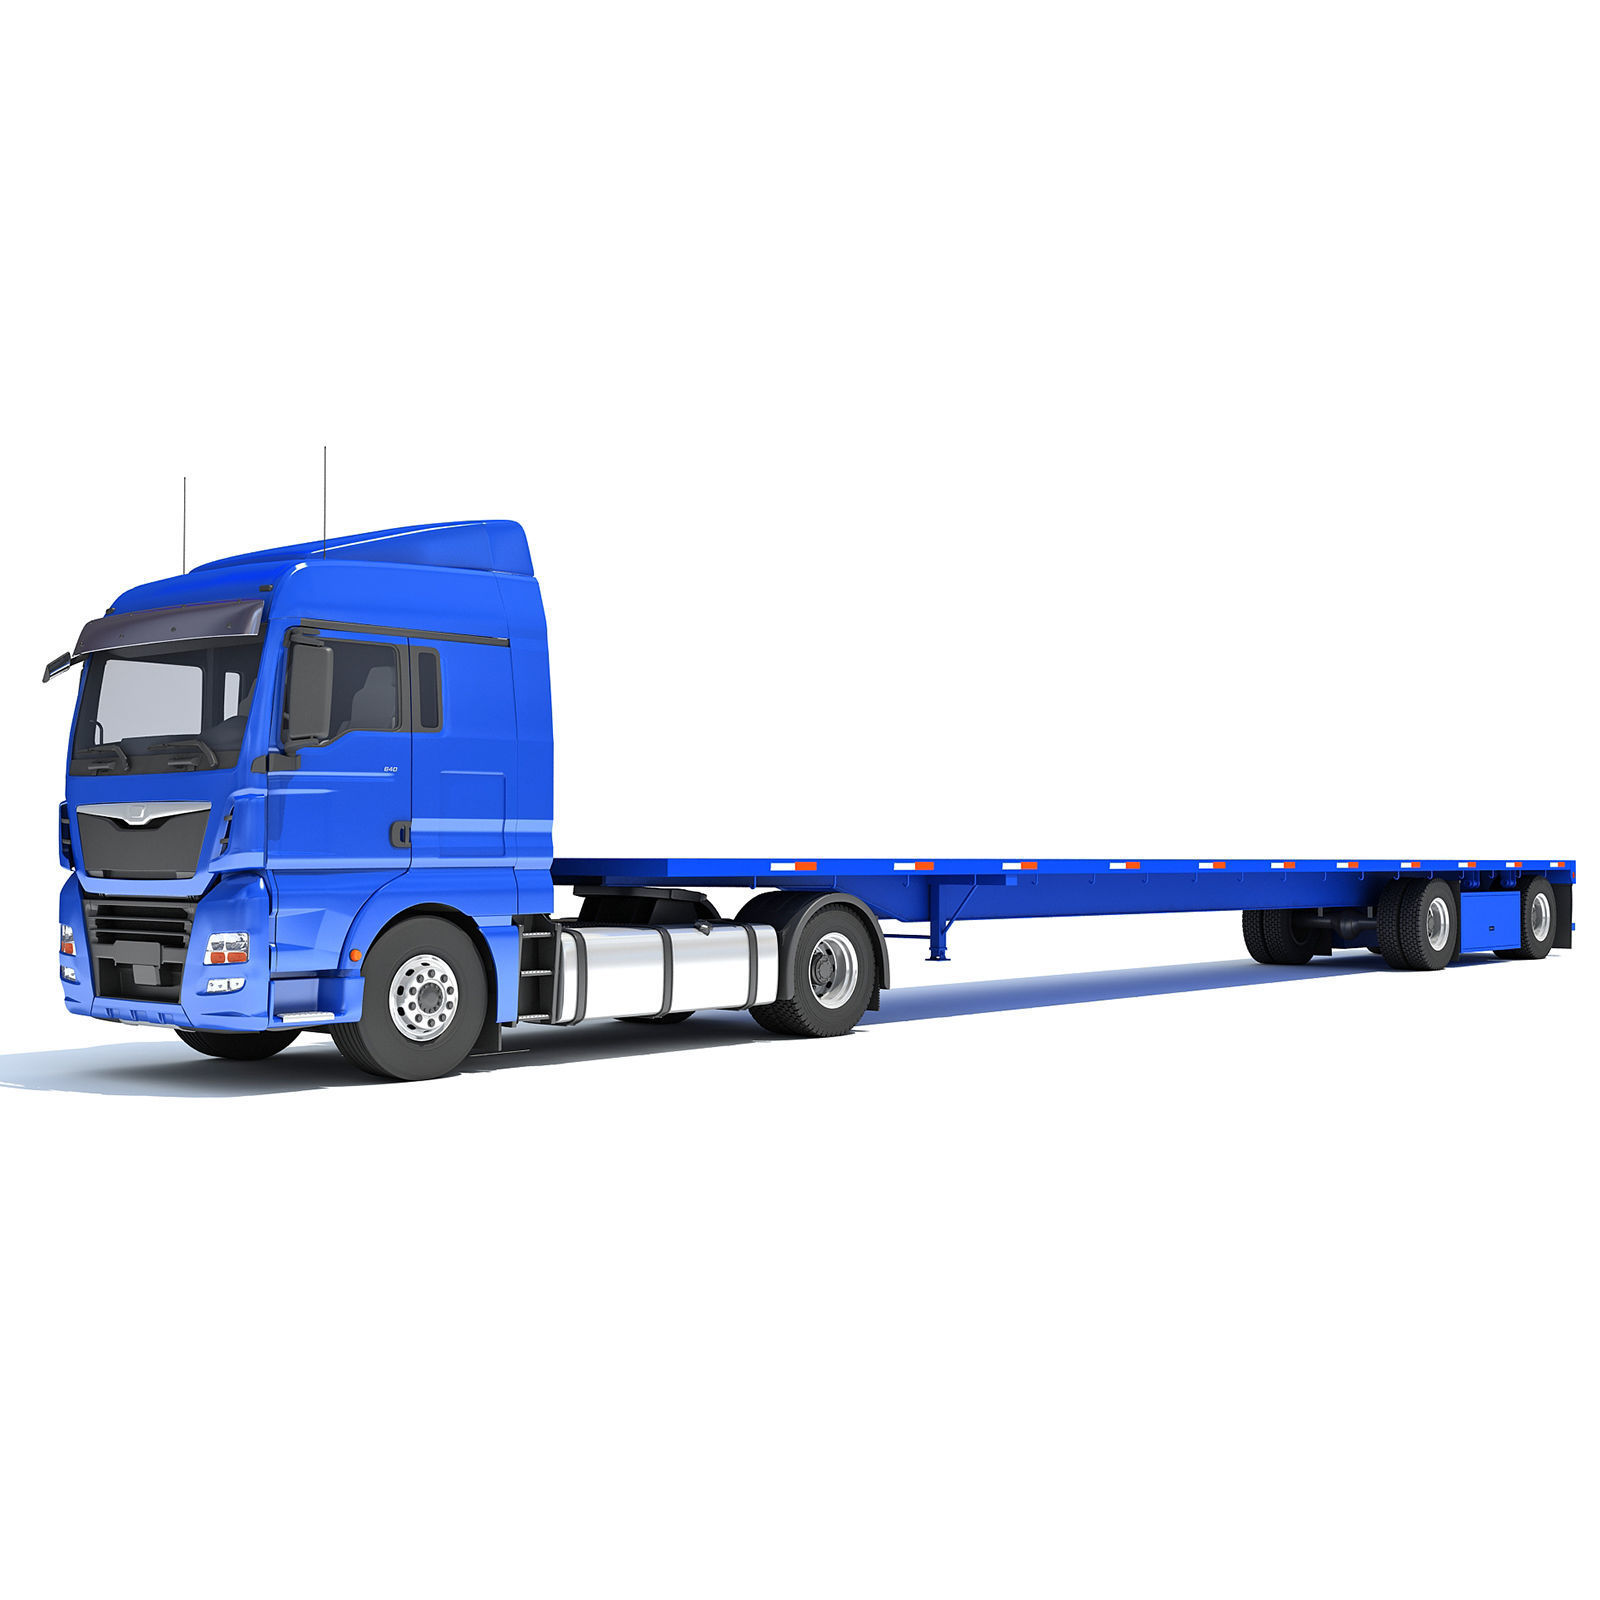 Freightliner Truck with Flatbed Trailer